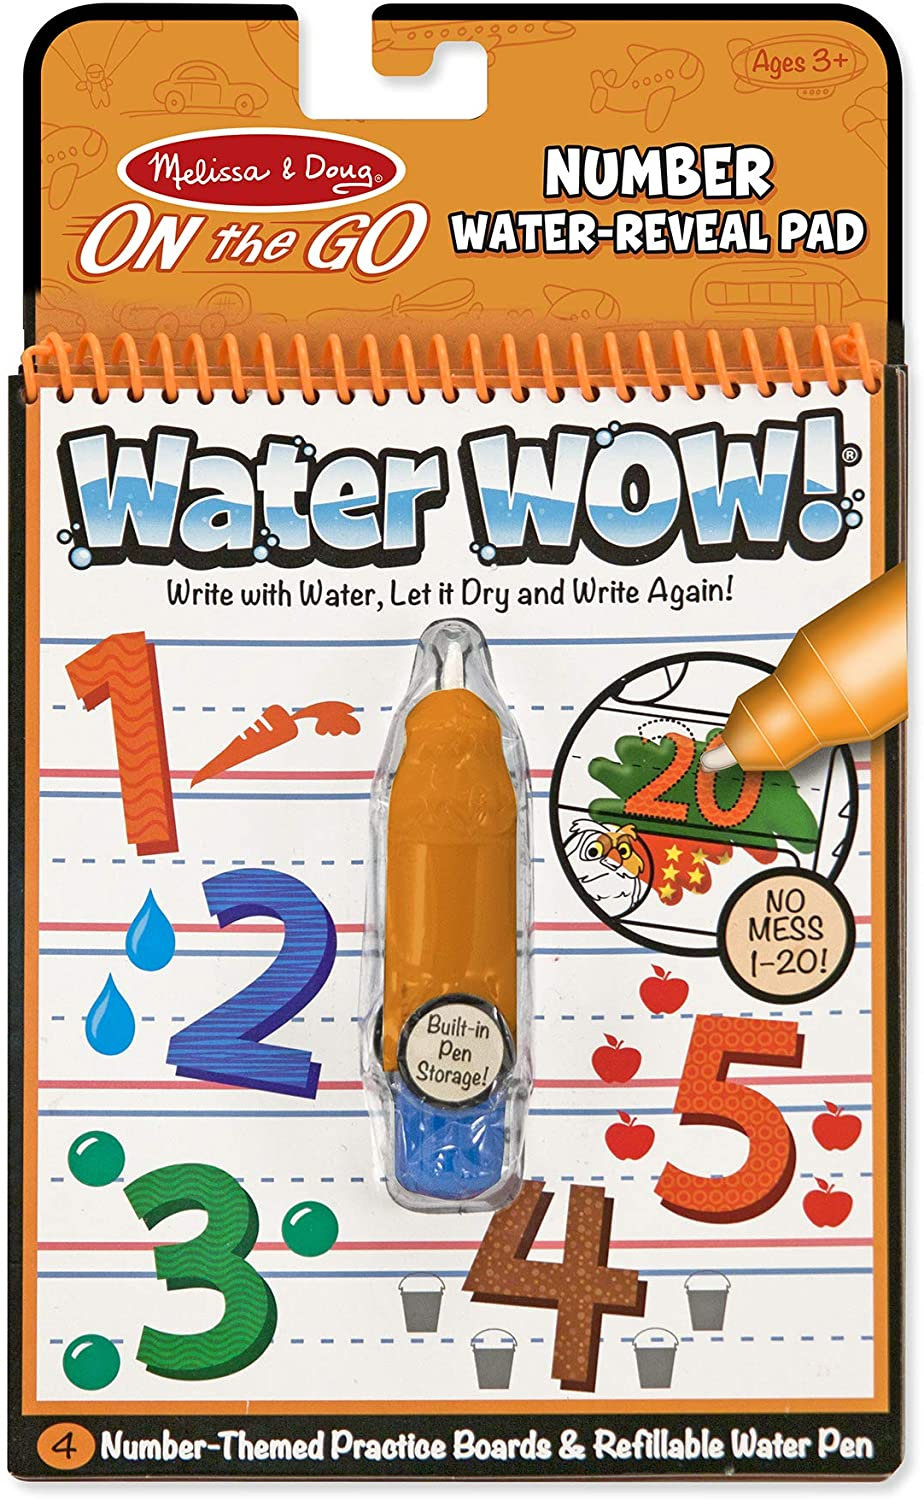 Water Wow! - Number Water Reveal Pad - ON the GO Travel Activity